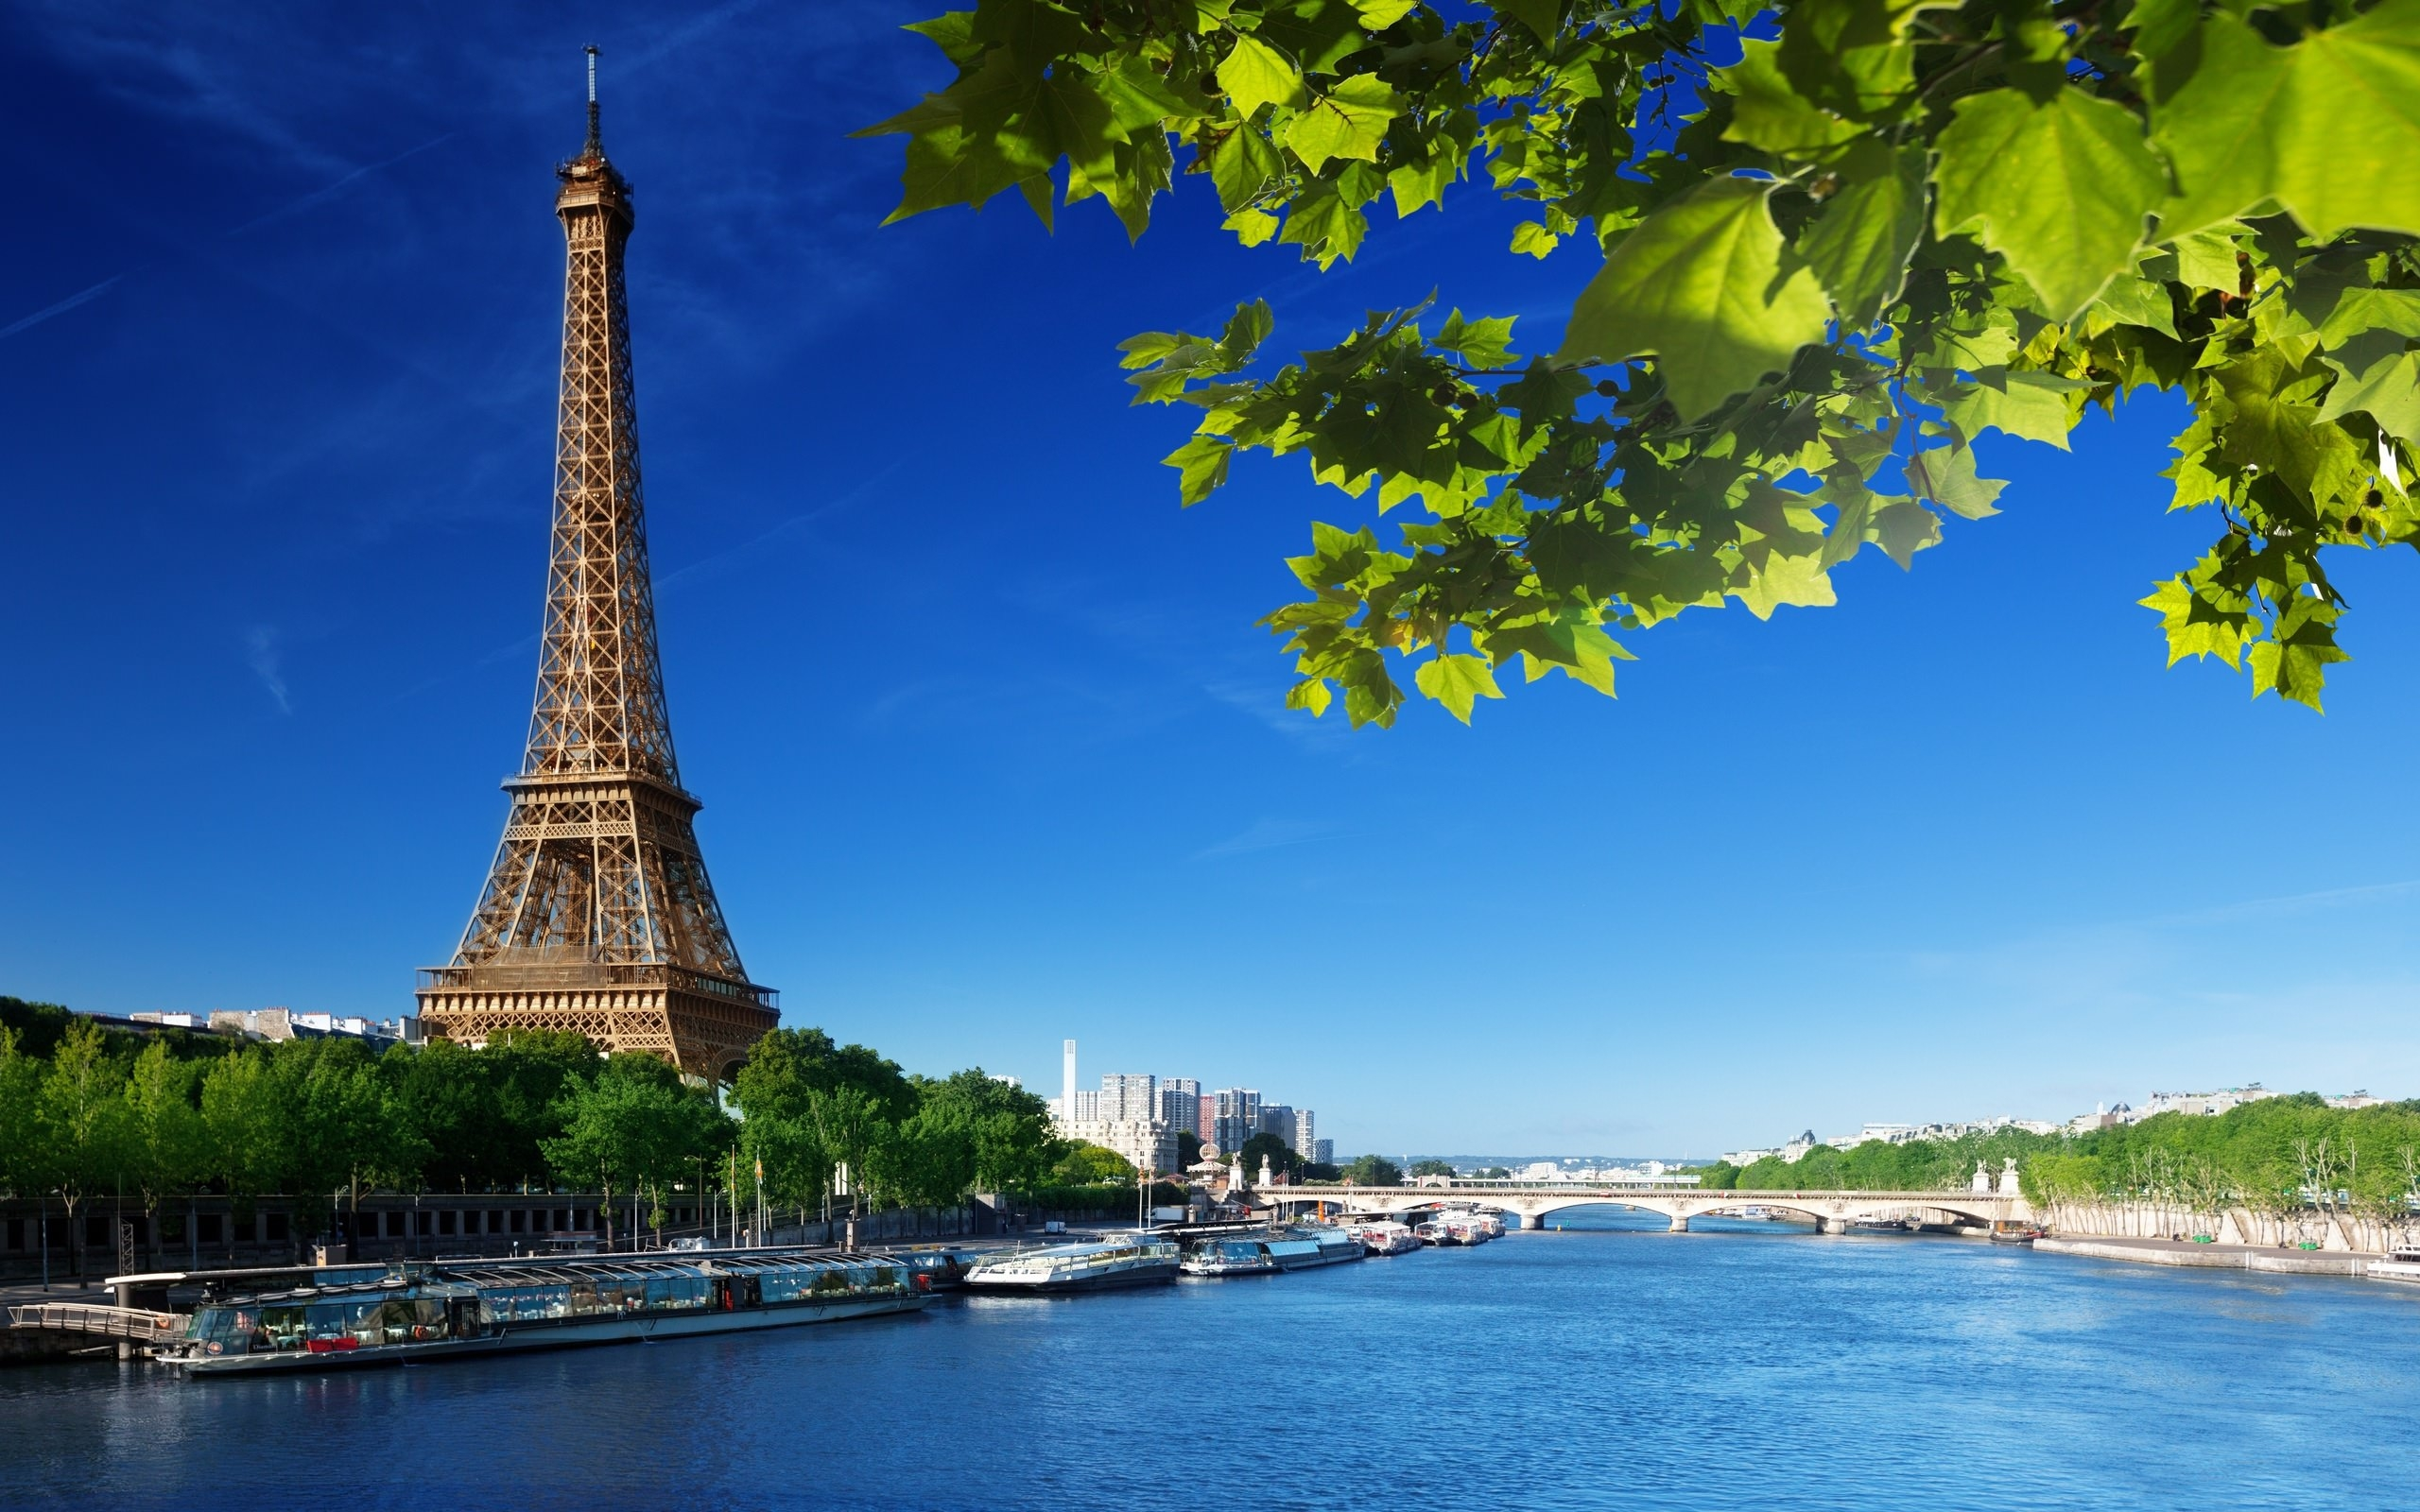 Eiffel Tower HD Wallpaper with Nature Greenery Background